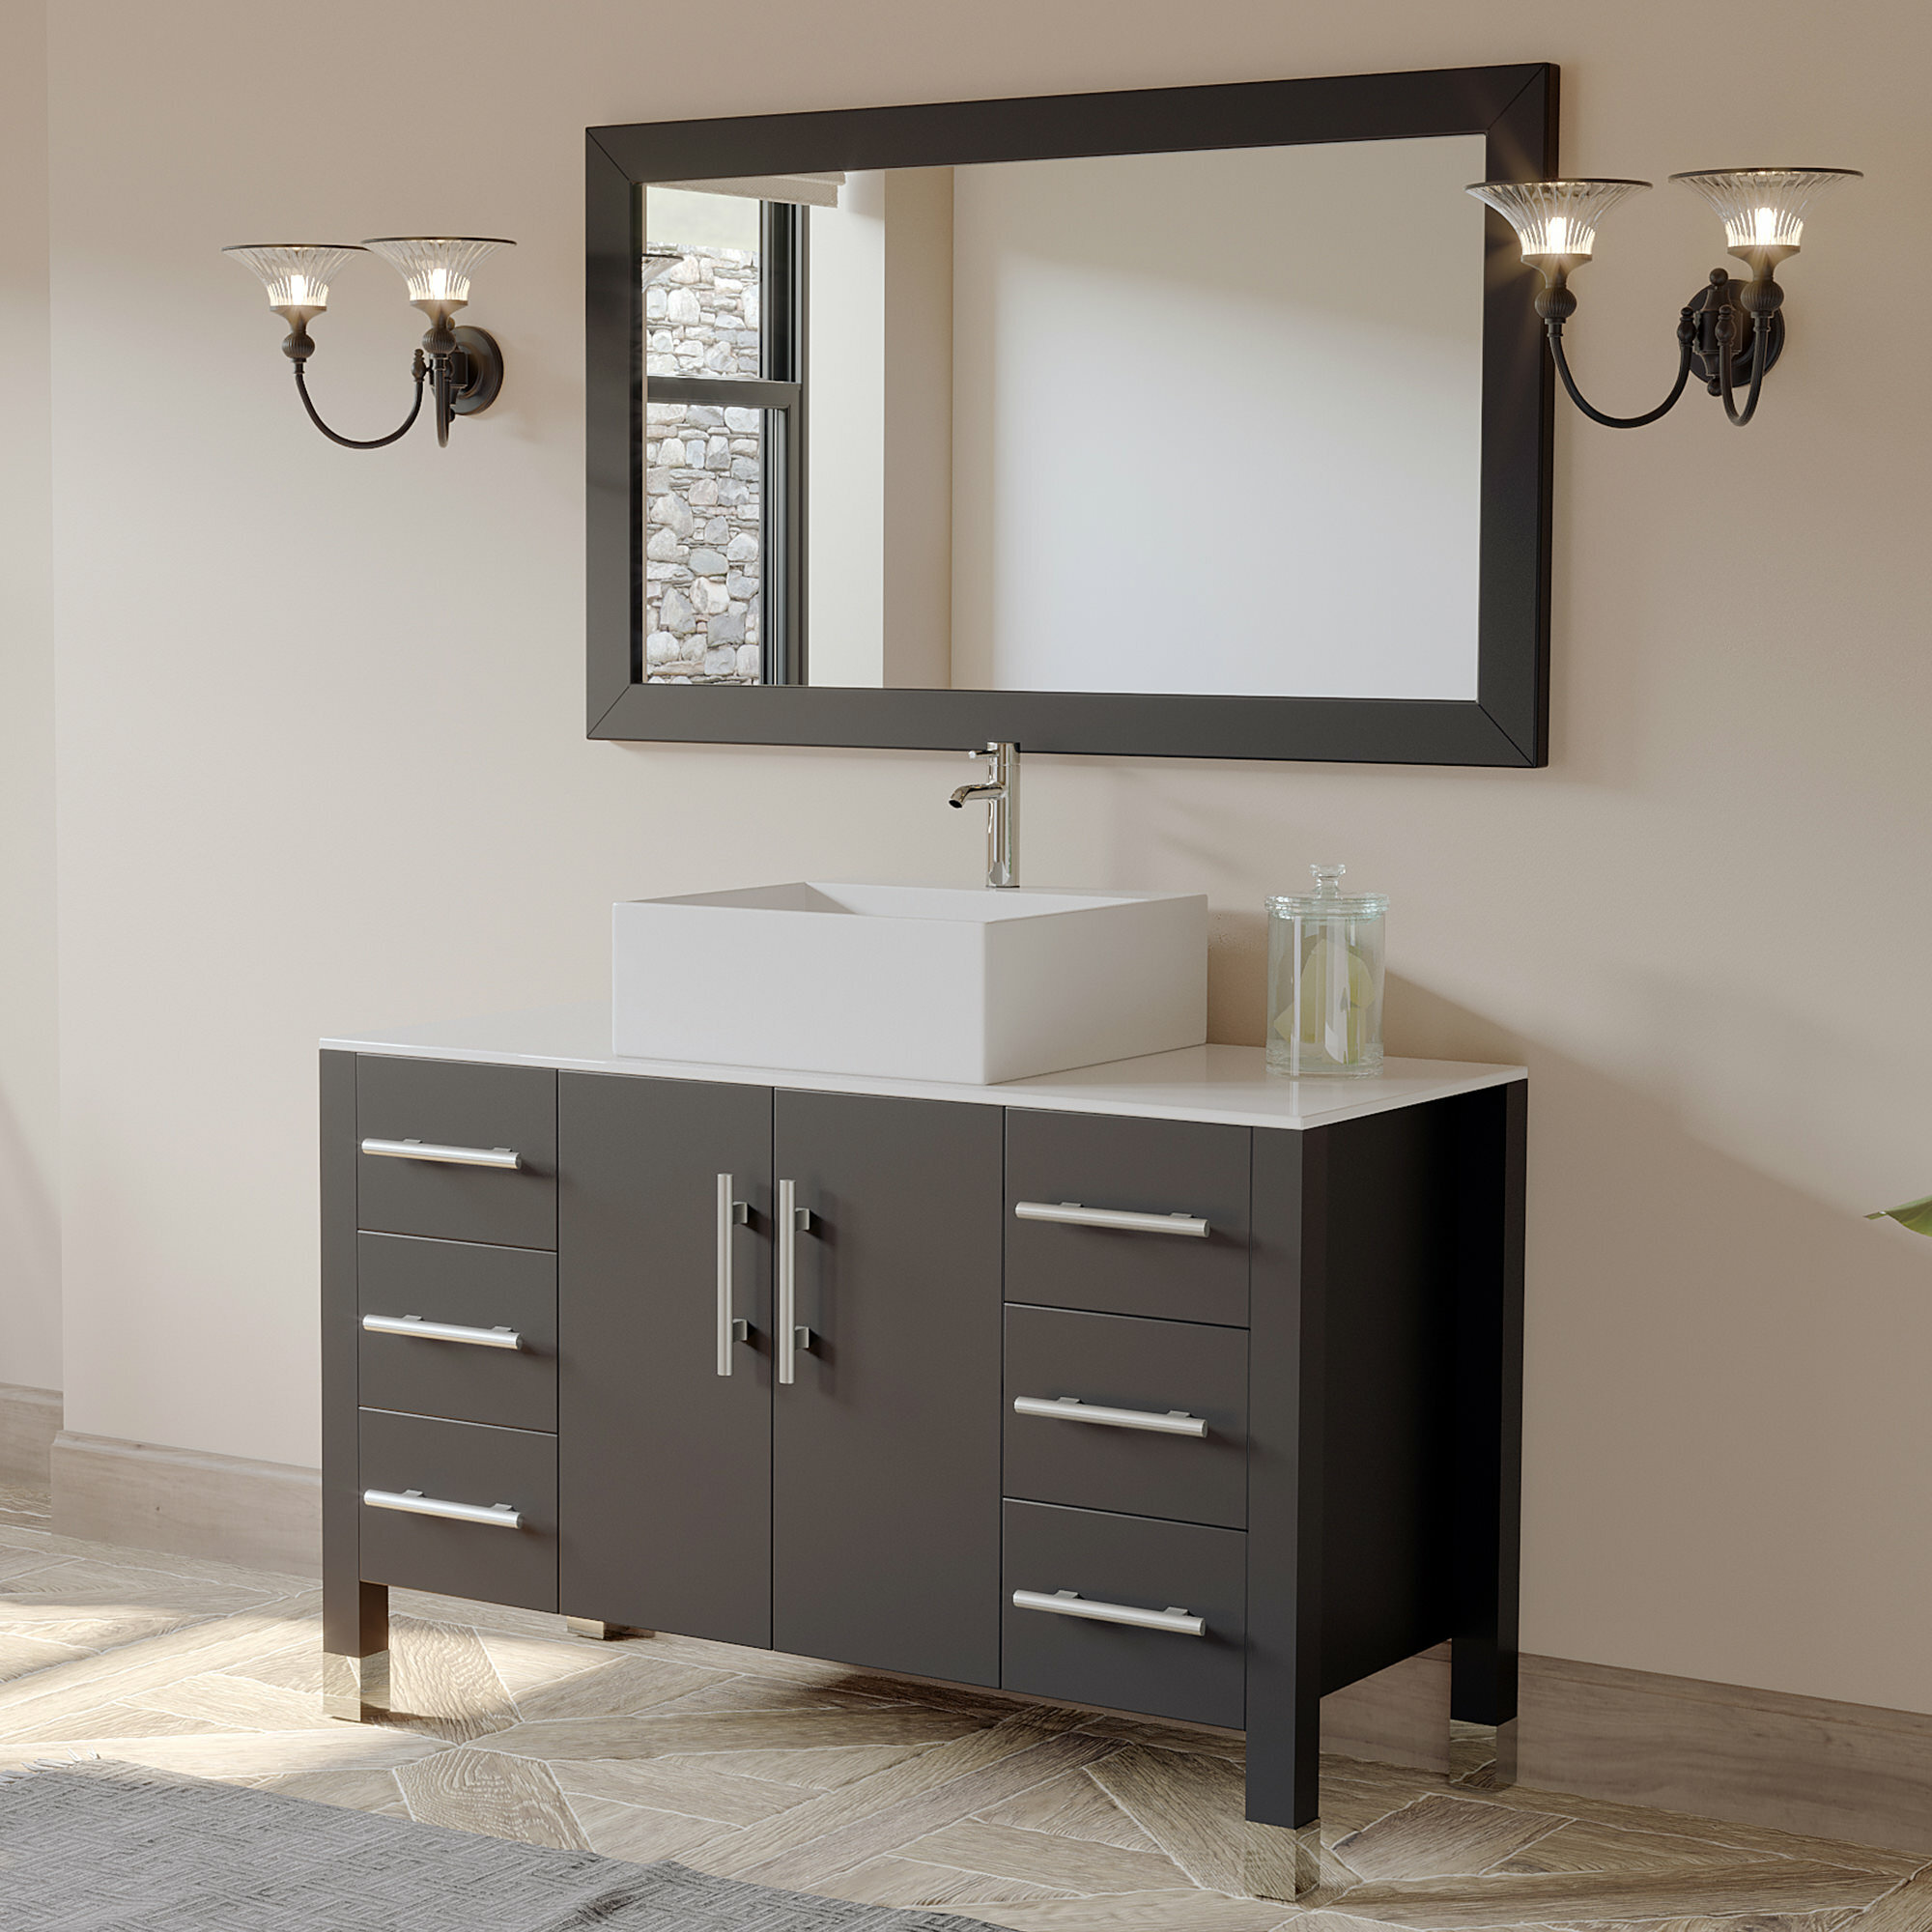 "Cambridge Plumbing Magnolia 47"" Single Bathroom Vanity Set with Mirror & Reviews 